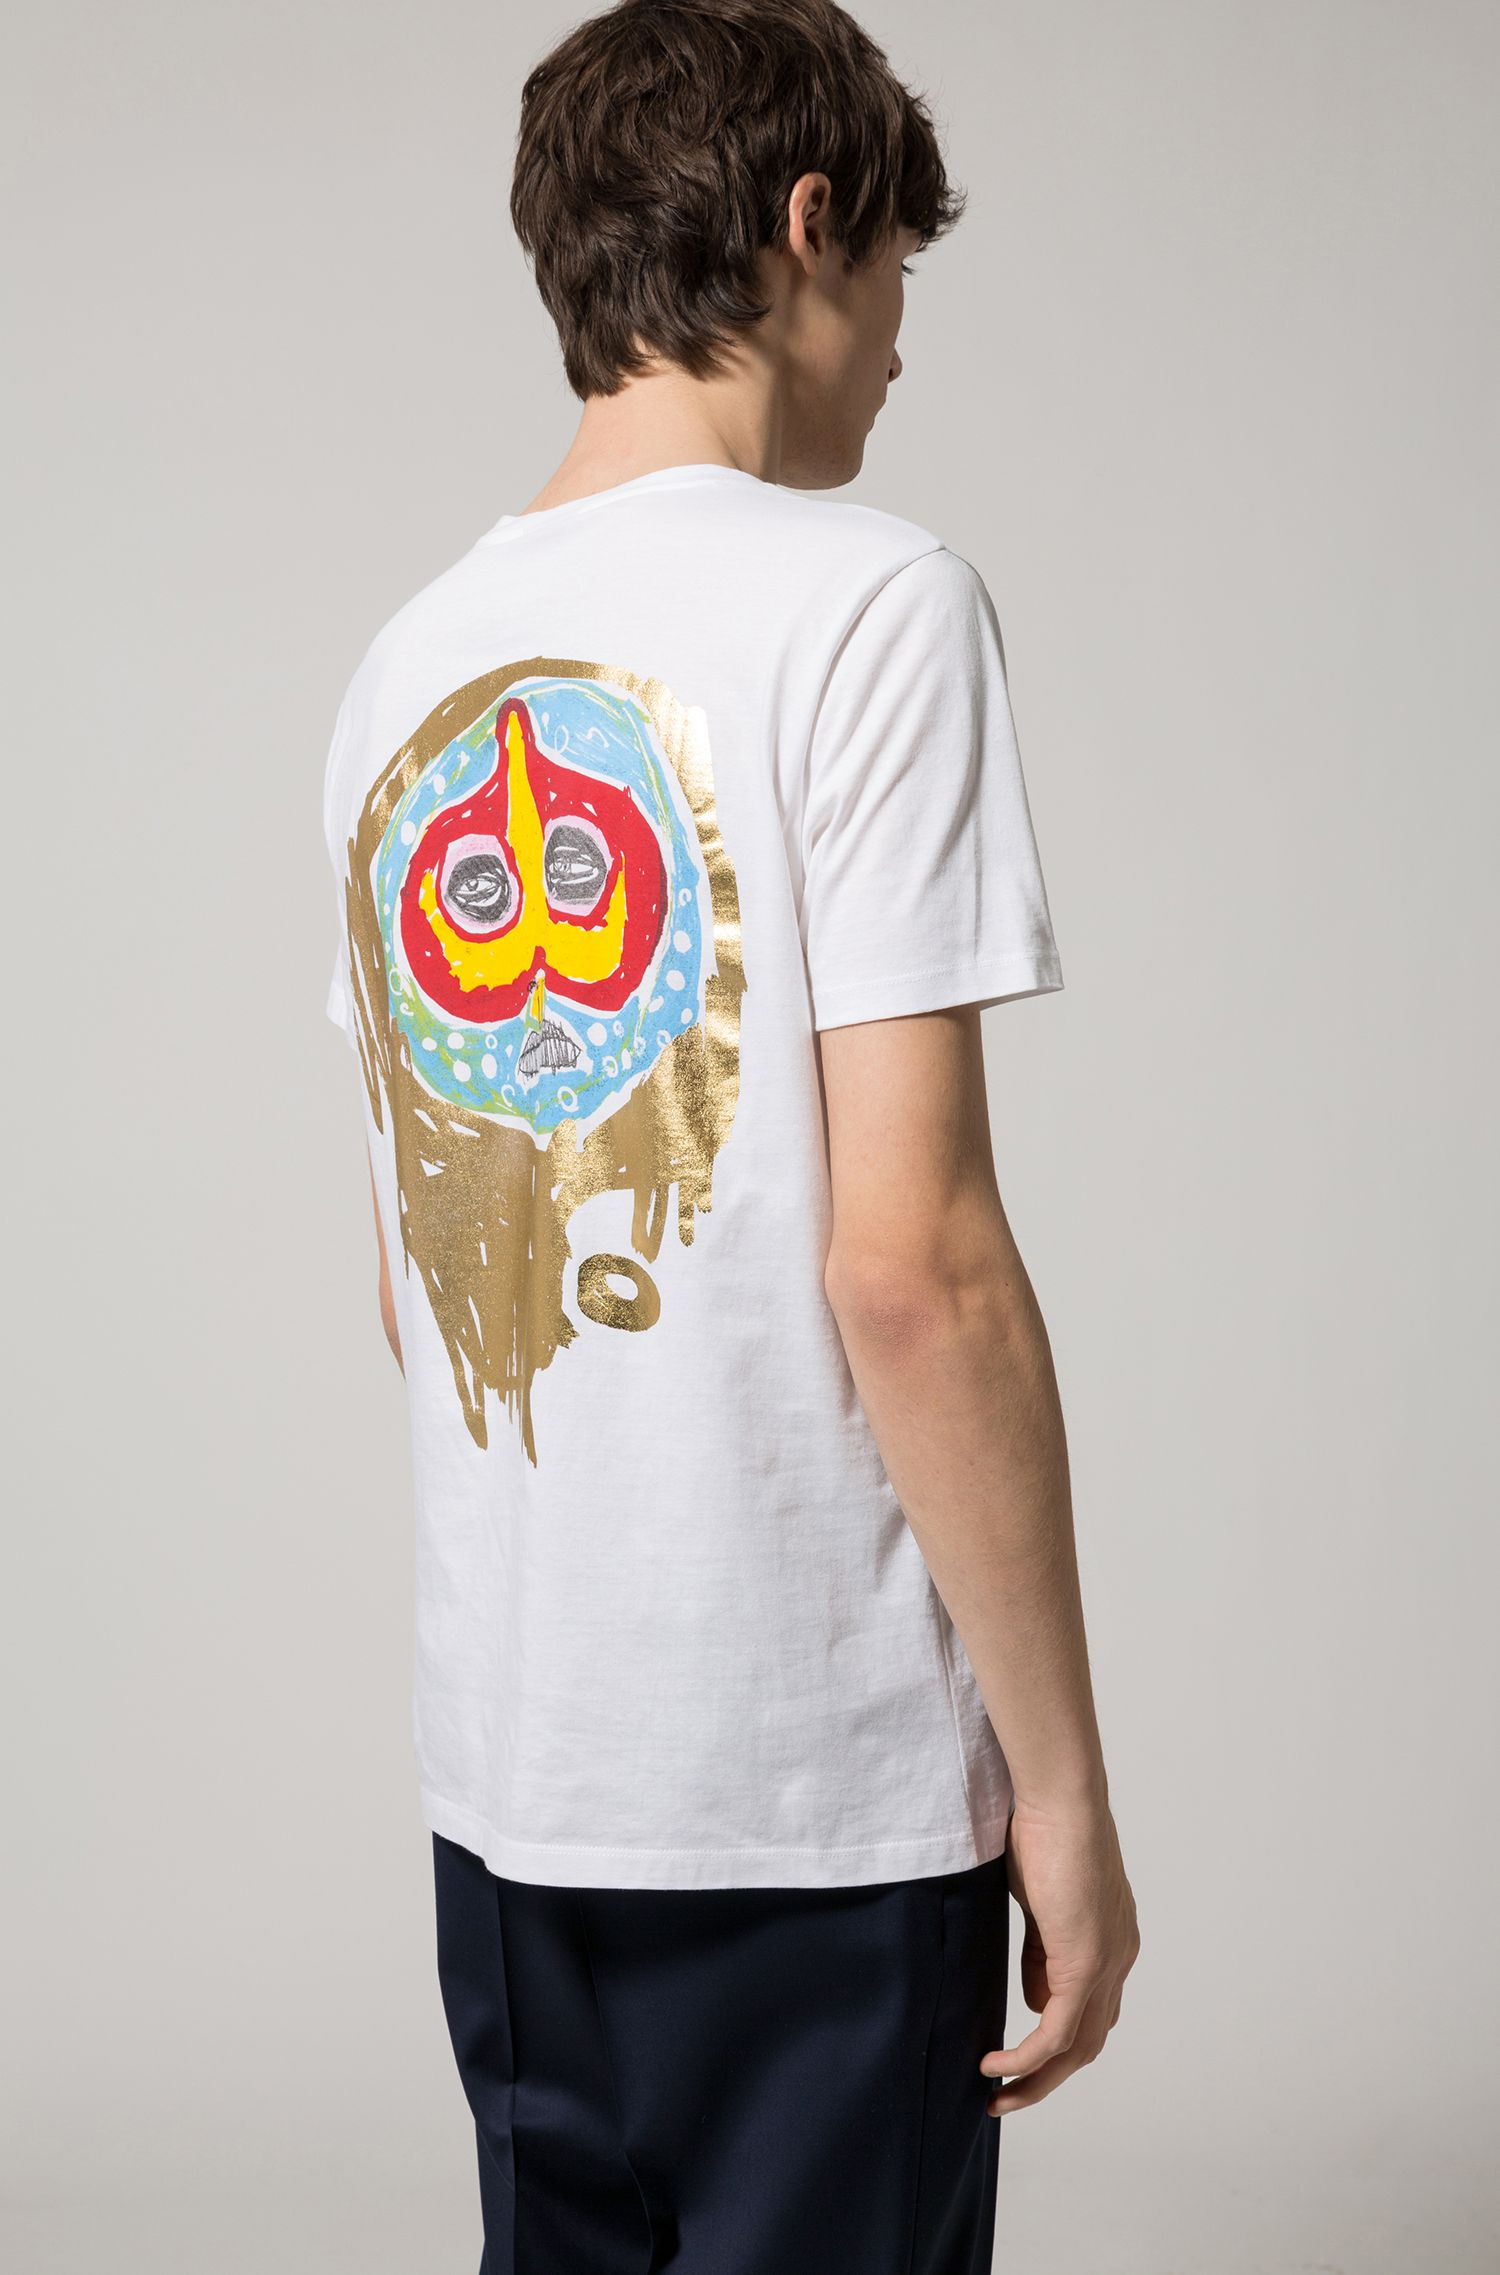 Abstract Cotton Graphic T-Shirt | Dirit